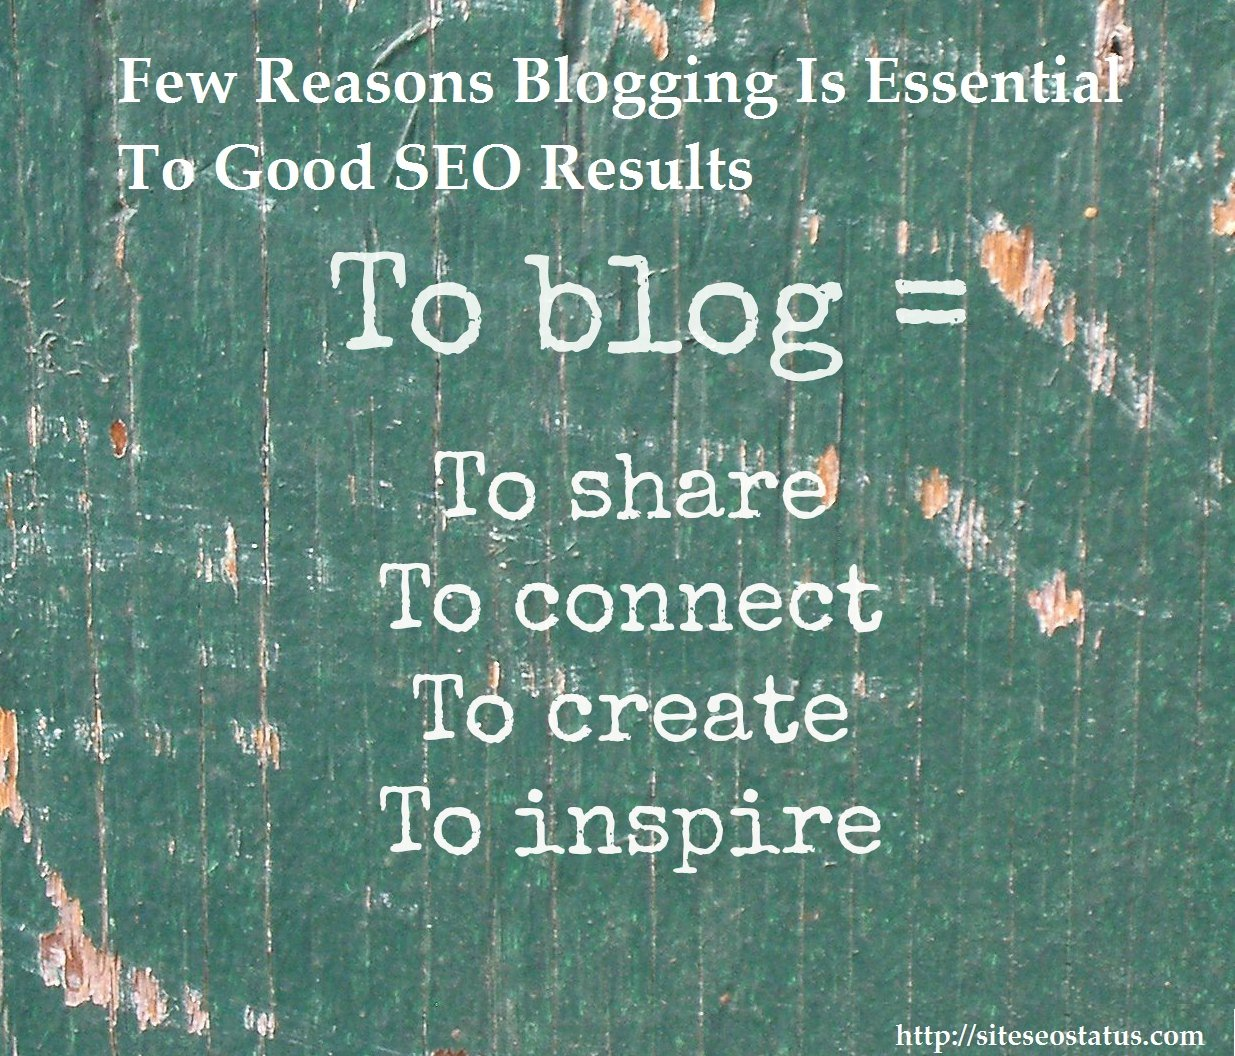 Few Reasons Blogging Is Essential To Good SEO Results | Use Google Analytics Seo Tools